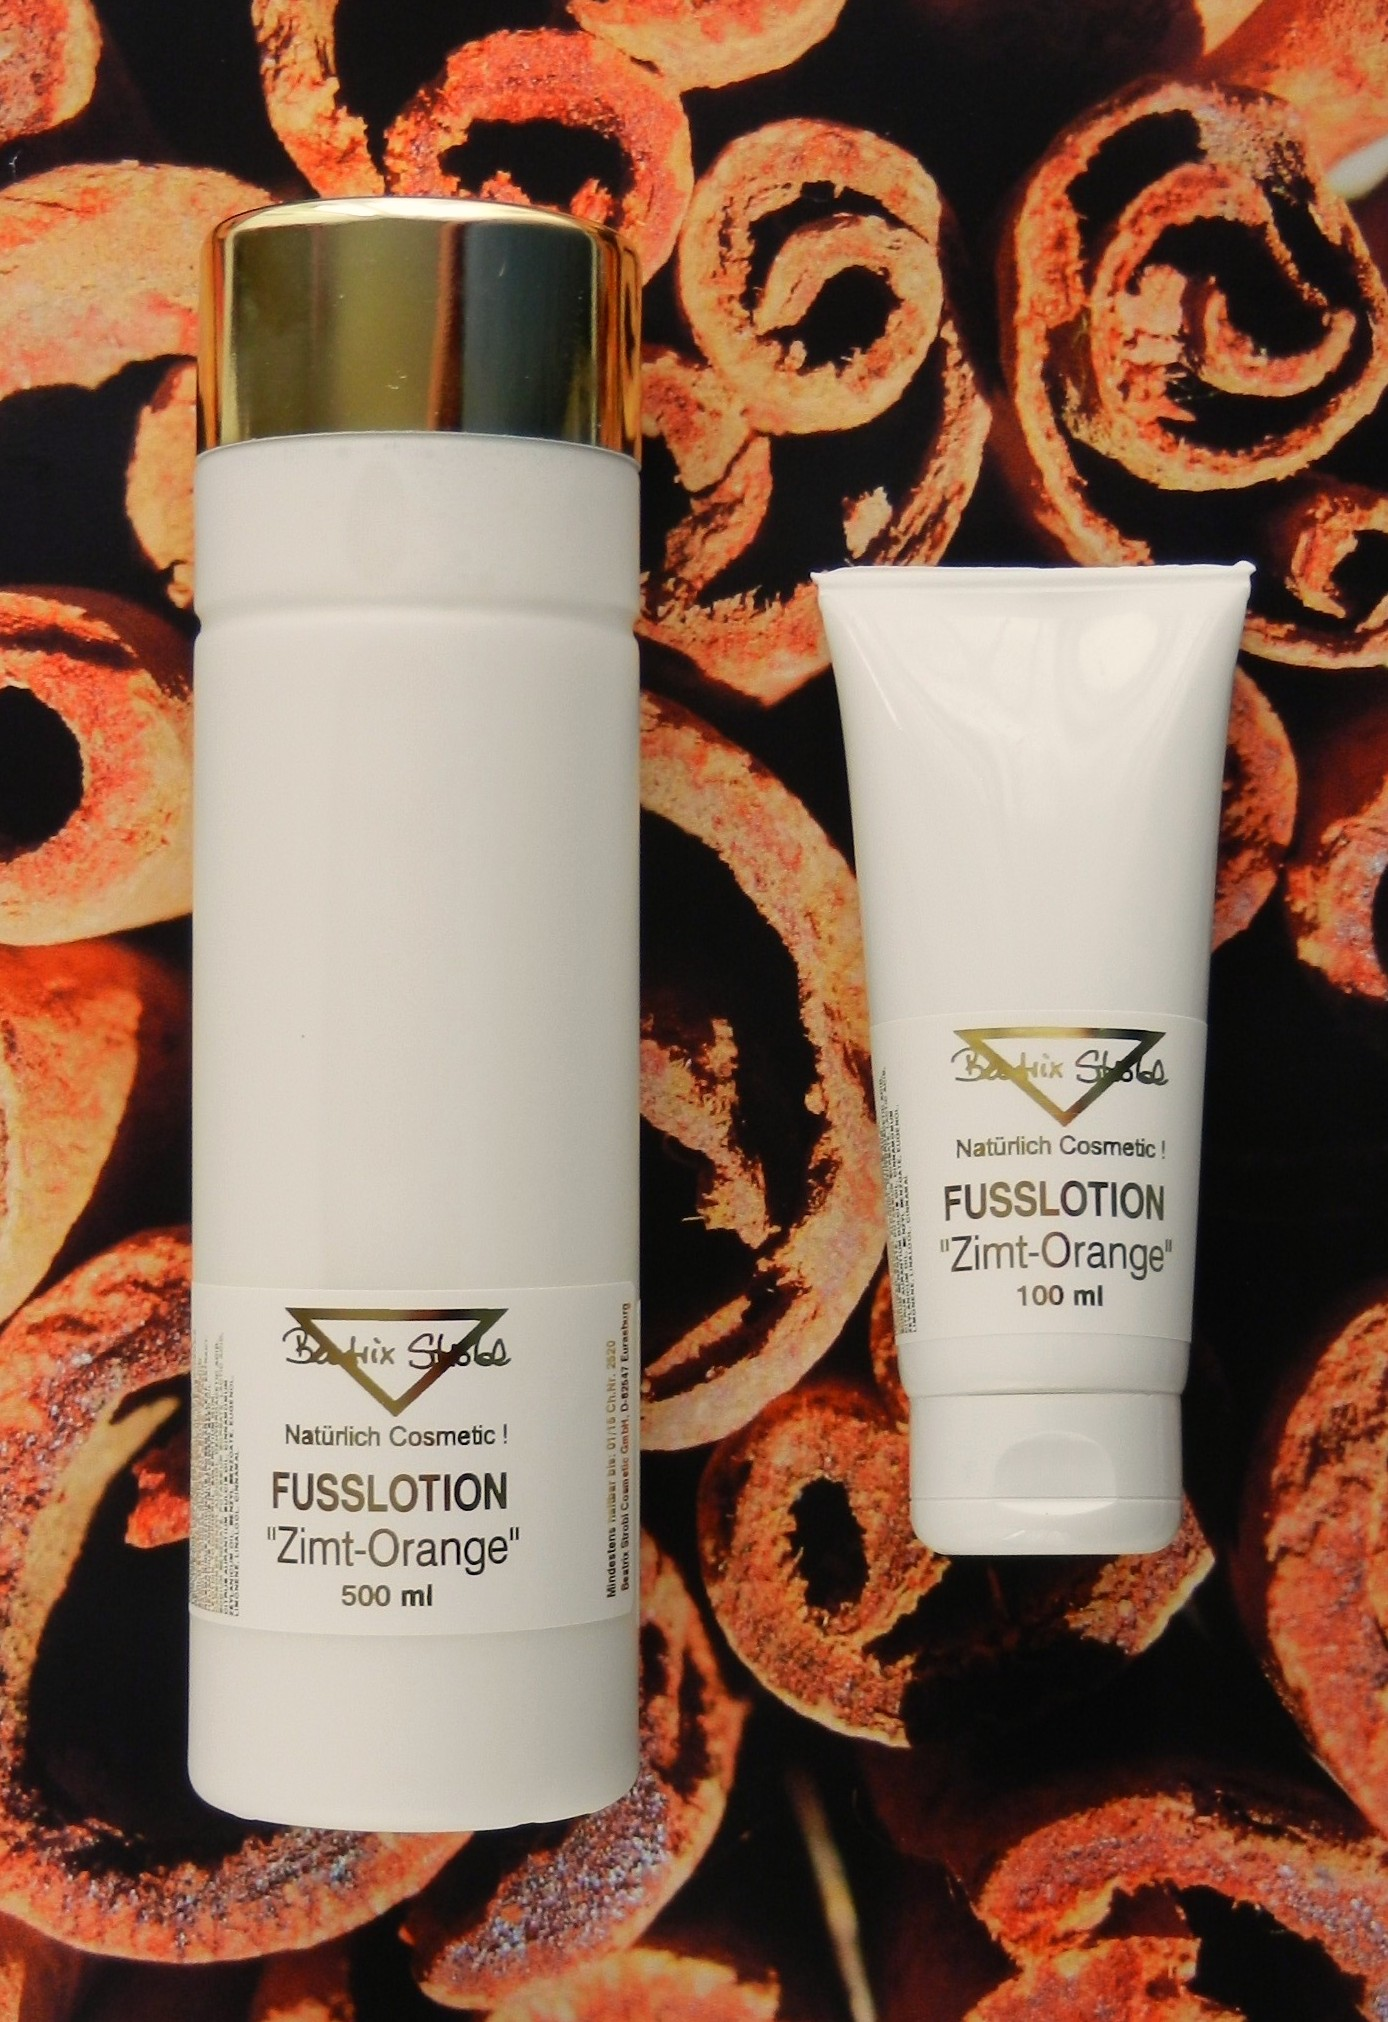 FUSSLOTION ZIMT-ORANGE